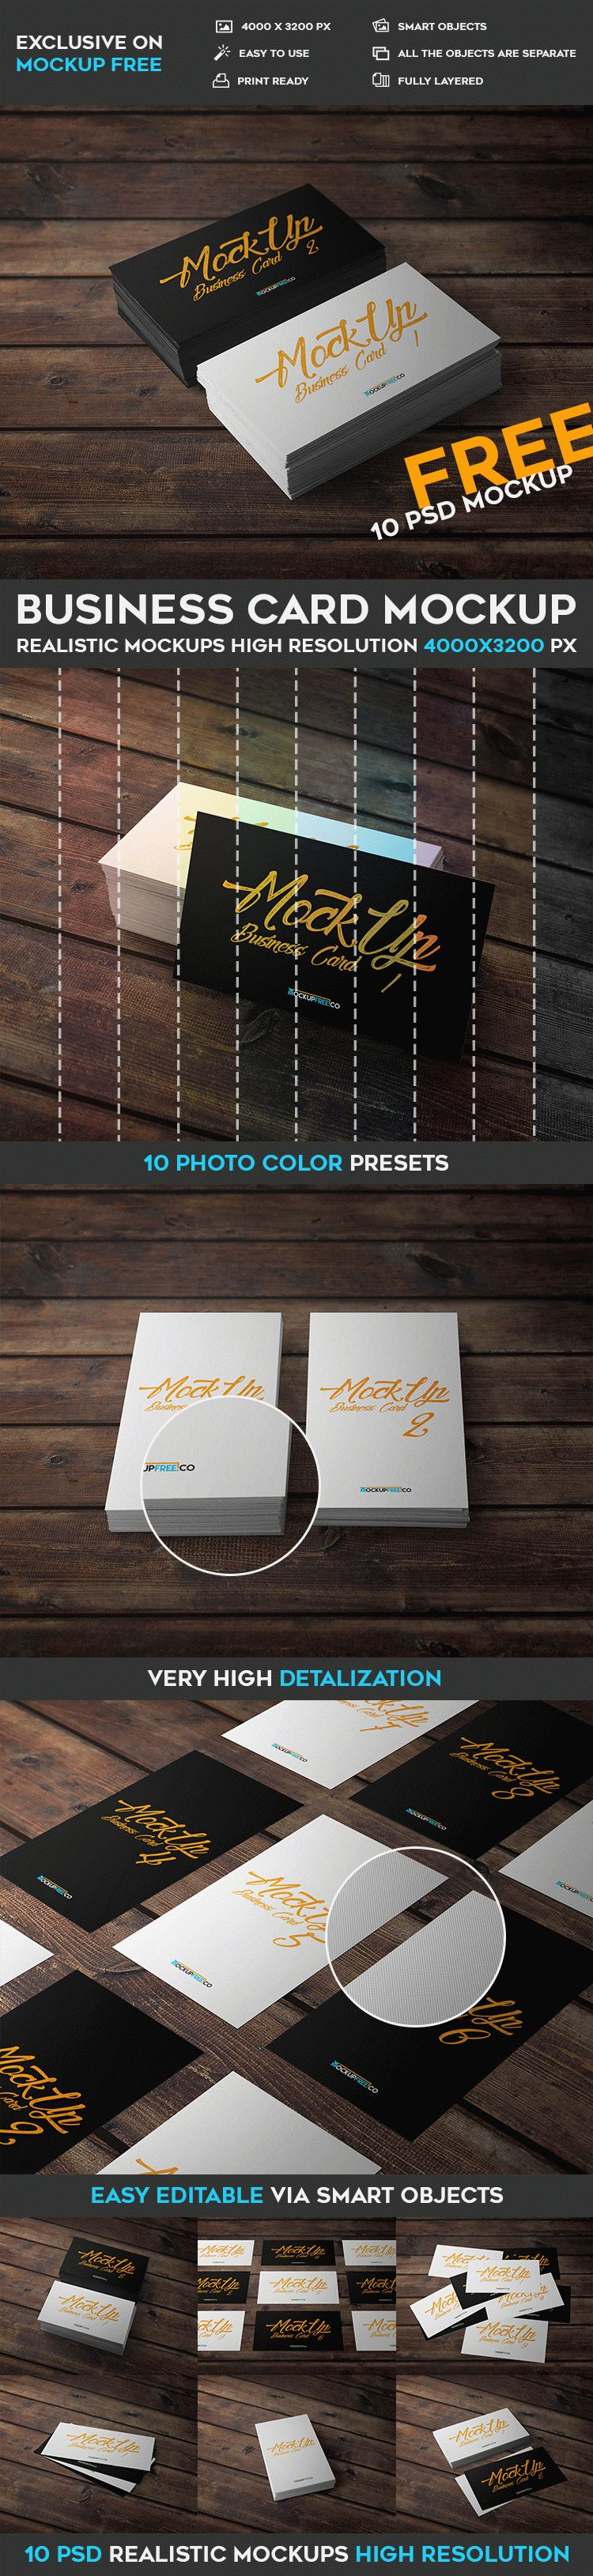 Business Card – 10 Free PSD Mockups | Free PSD Templates